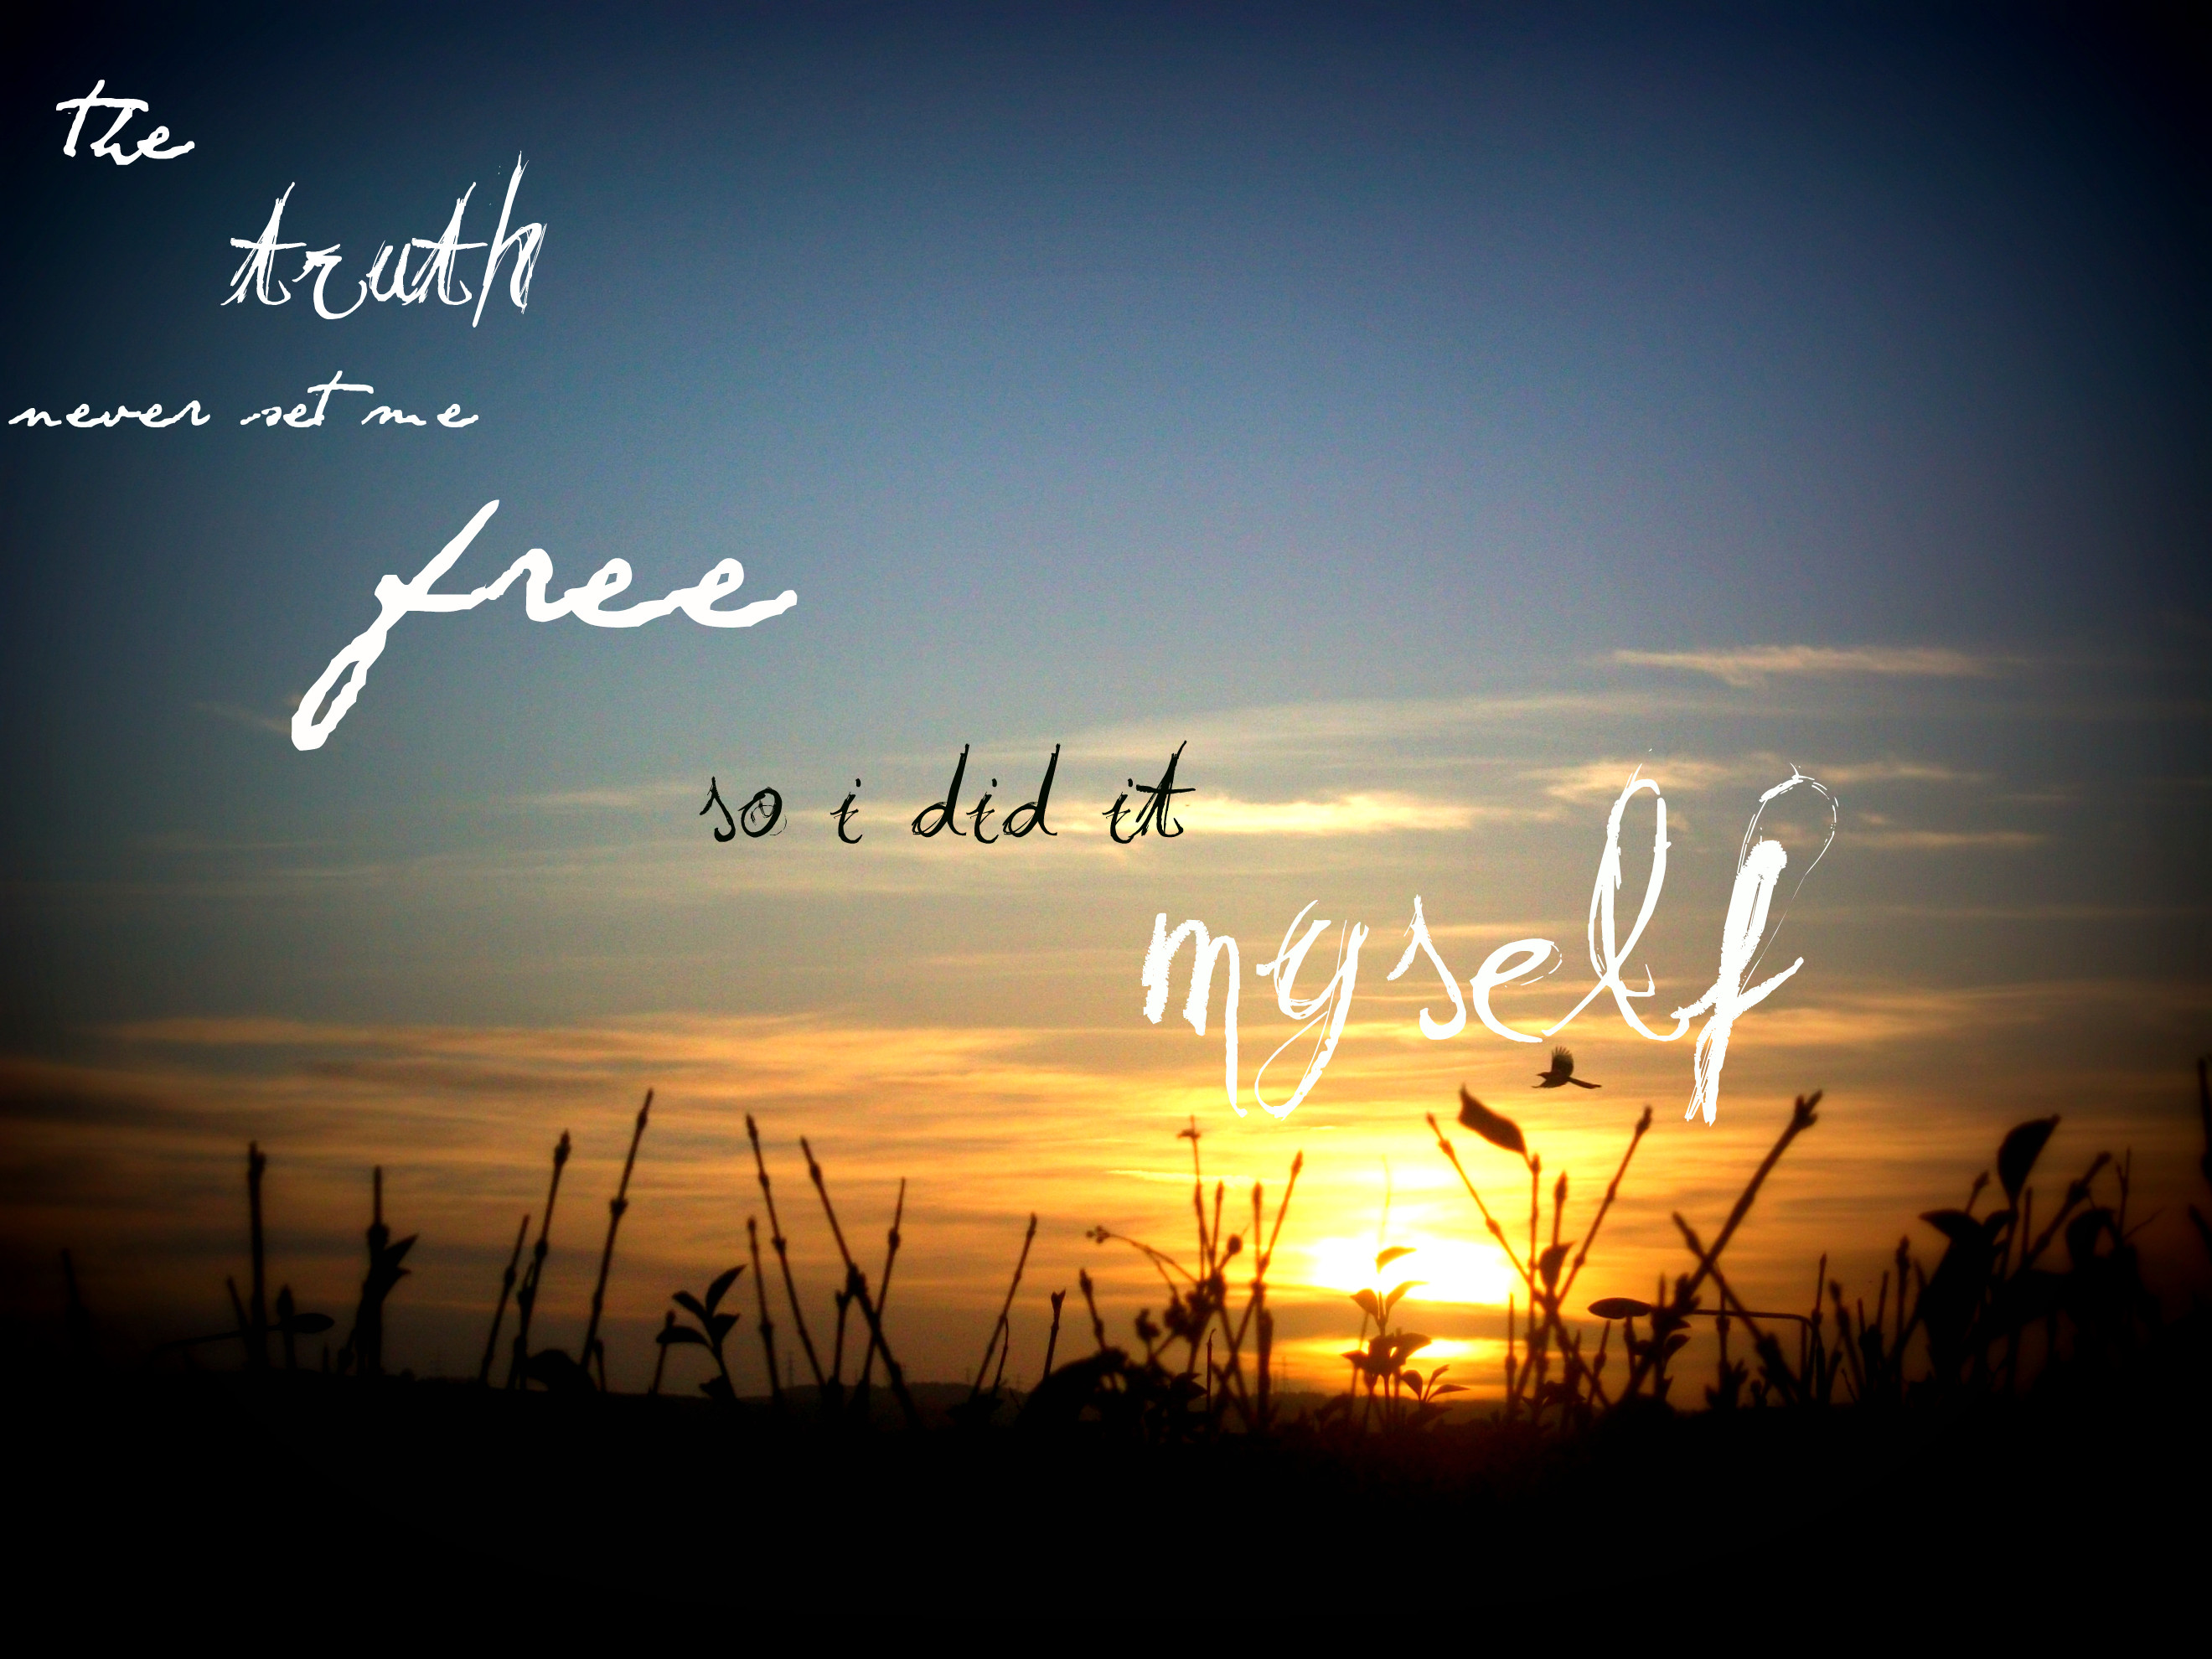 the truth set me free Free shipping buy the truth set me free at walmartcom.